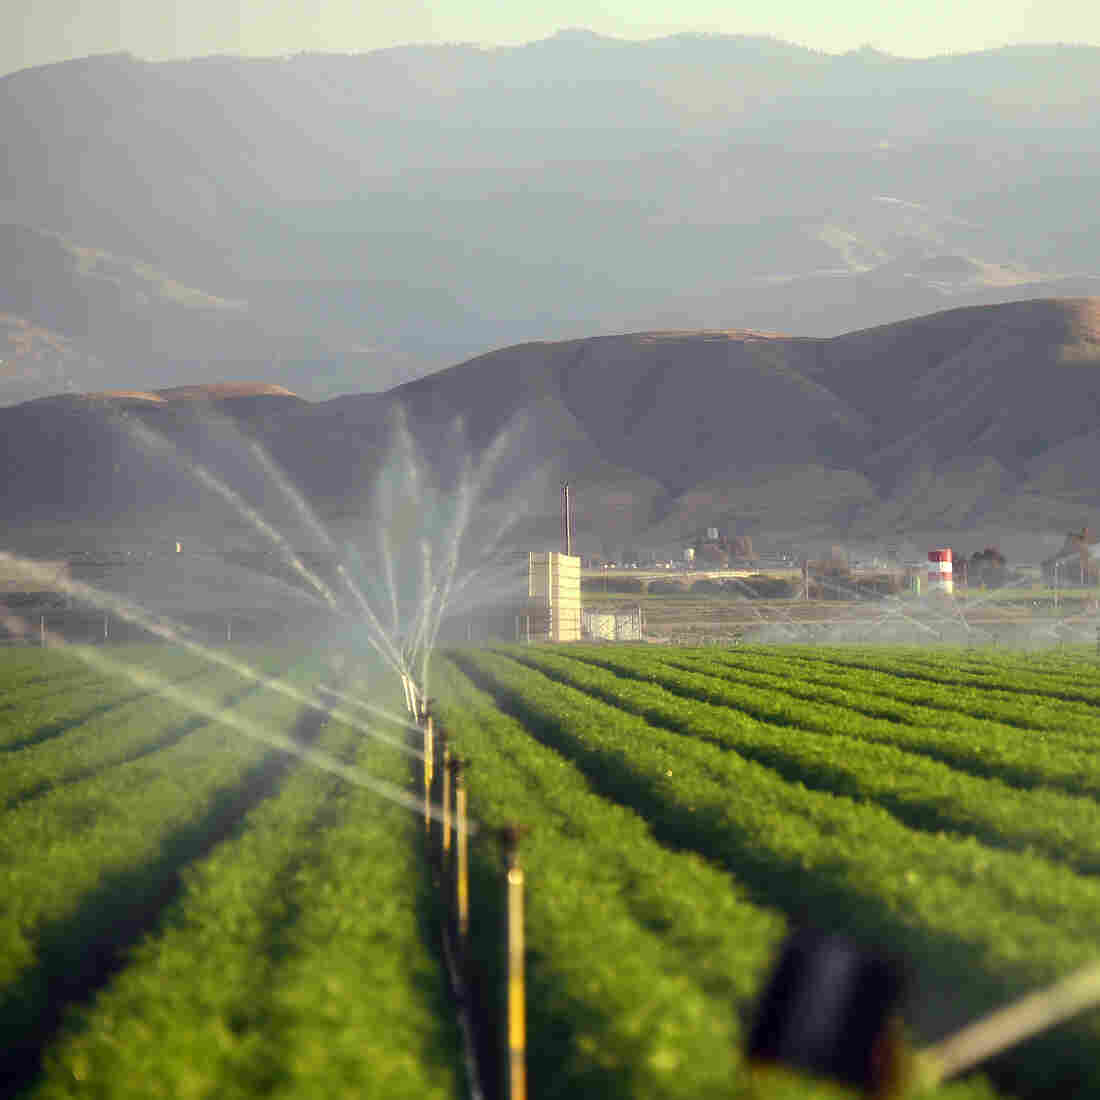 California Farmers Gulp Most Of State's Water, But Say They've Cut Back